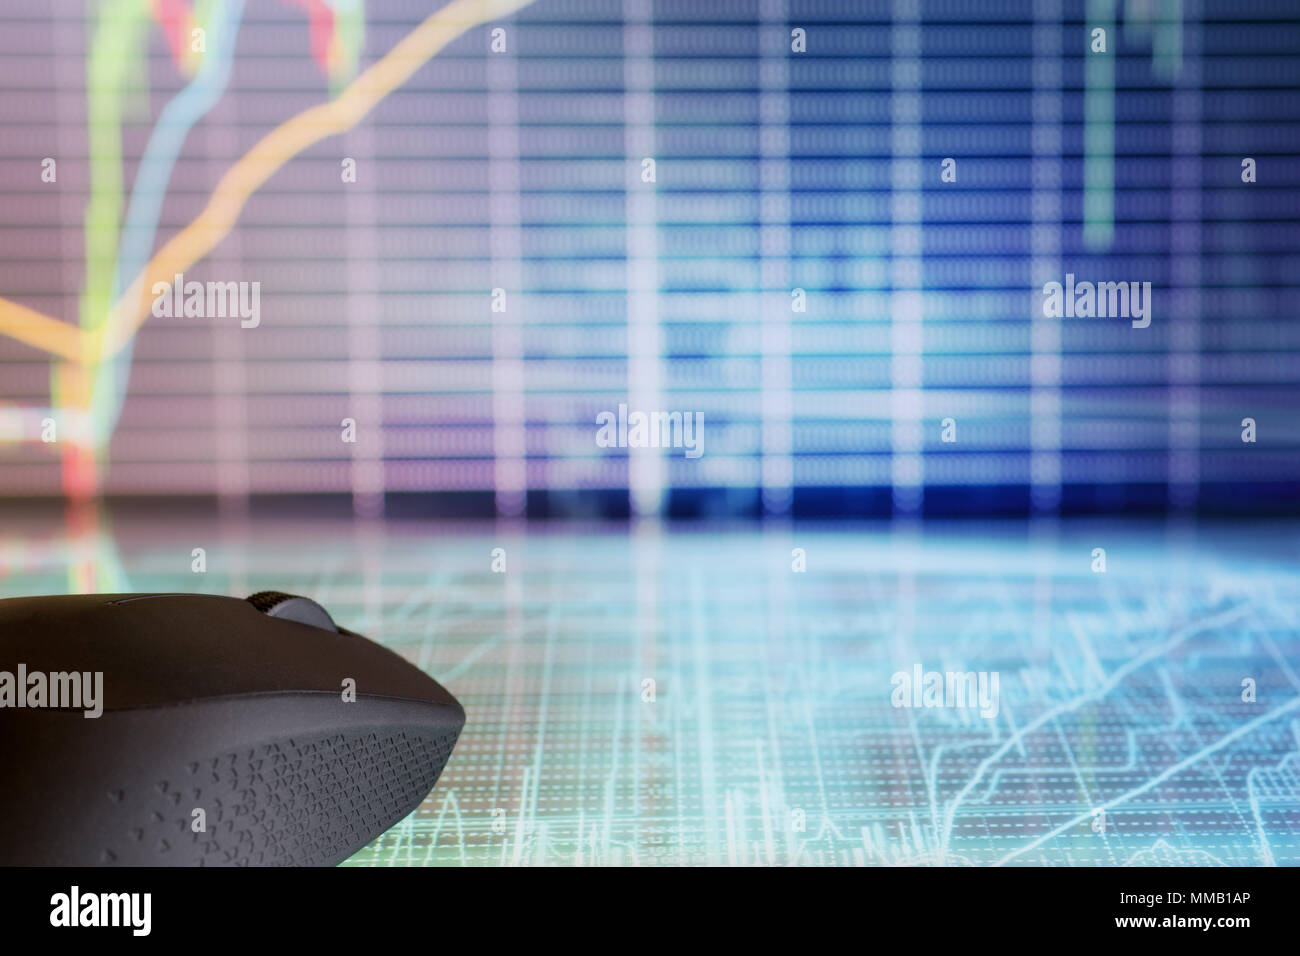 Computer mouse on futuristic display with defocused stock market graphs. Internet trading and modern business theme - Stock Image